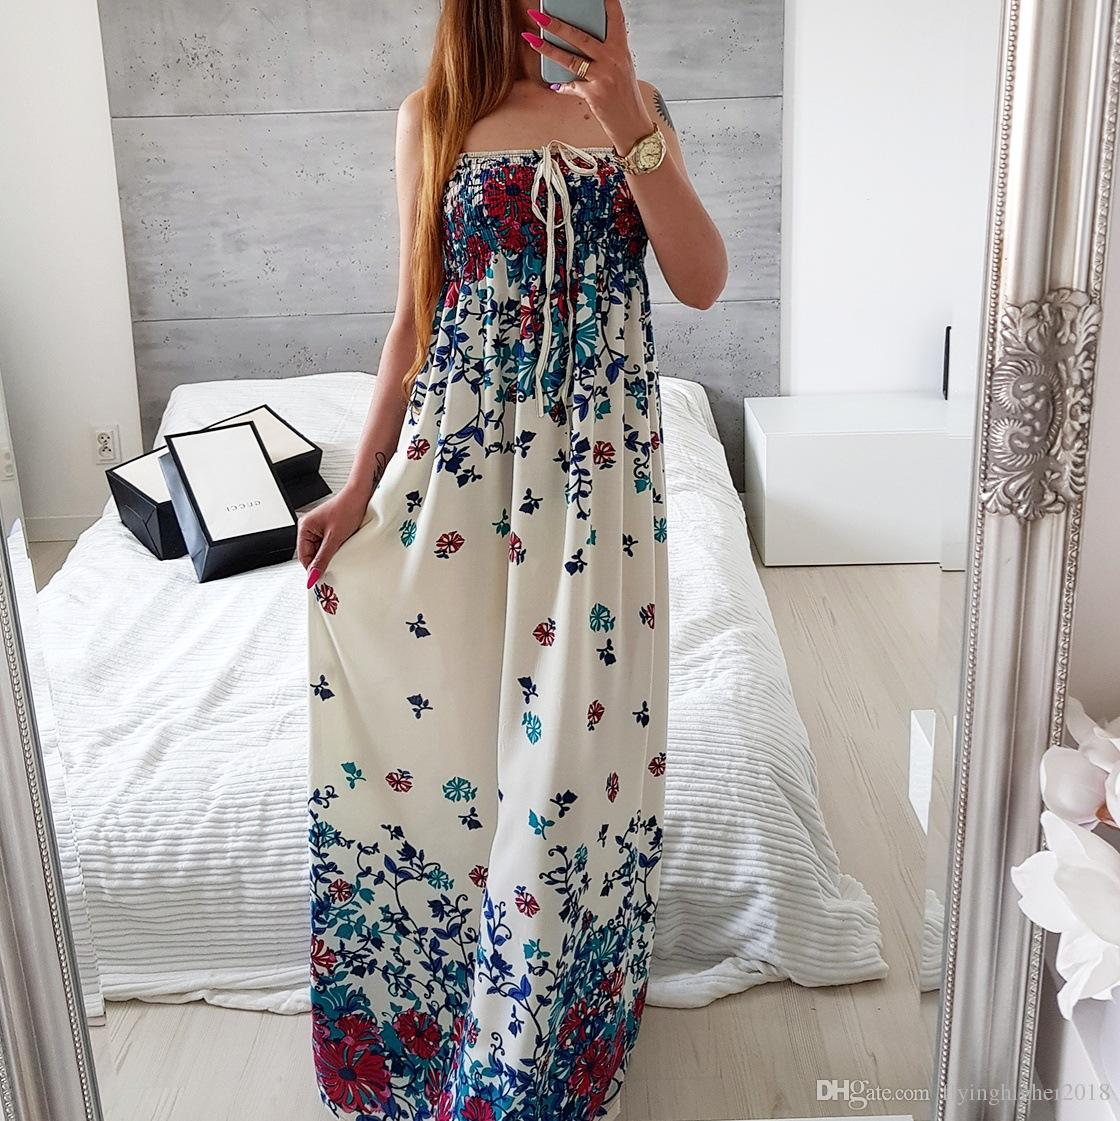 Floral Print Maxi Dresses 2018 Girl Kawaii Lace Up Plus Size Beach Summer  Boho Long Dress Women Female Strapless Sundress Summer Dresses Womens ...